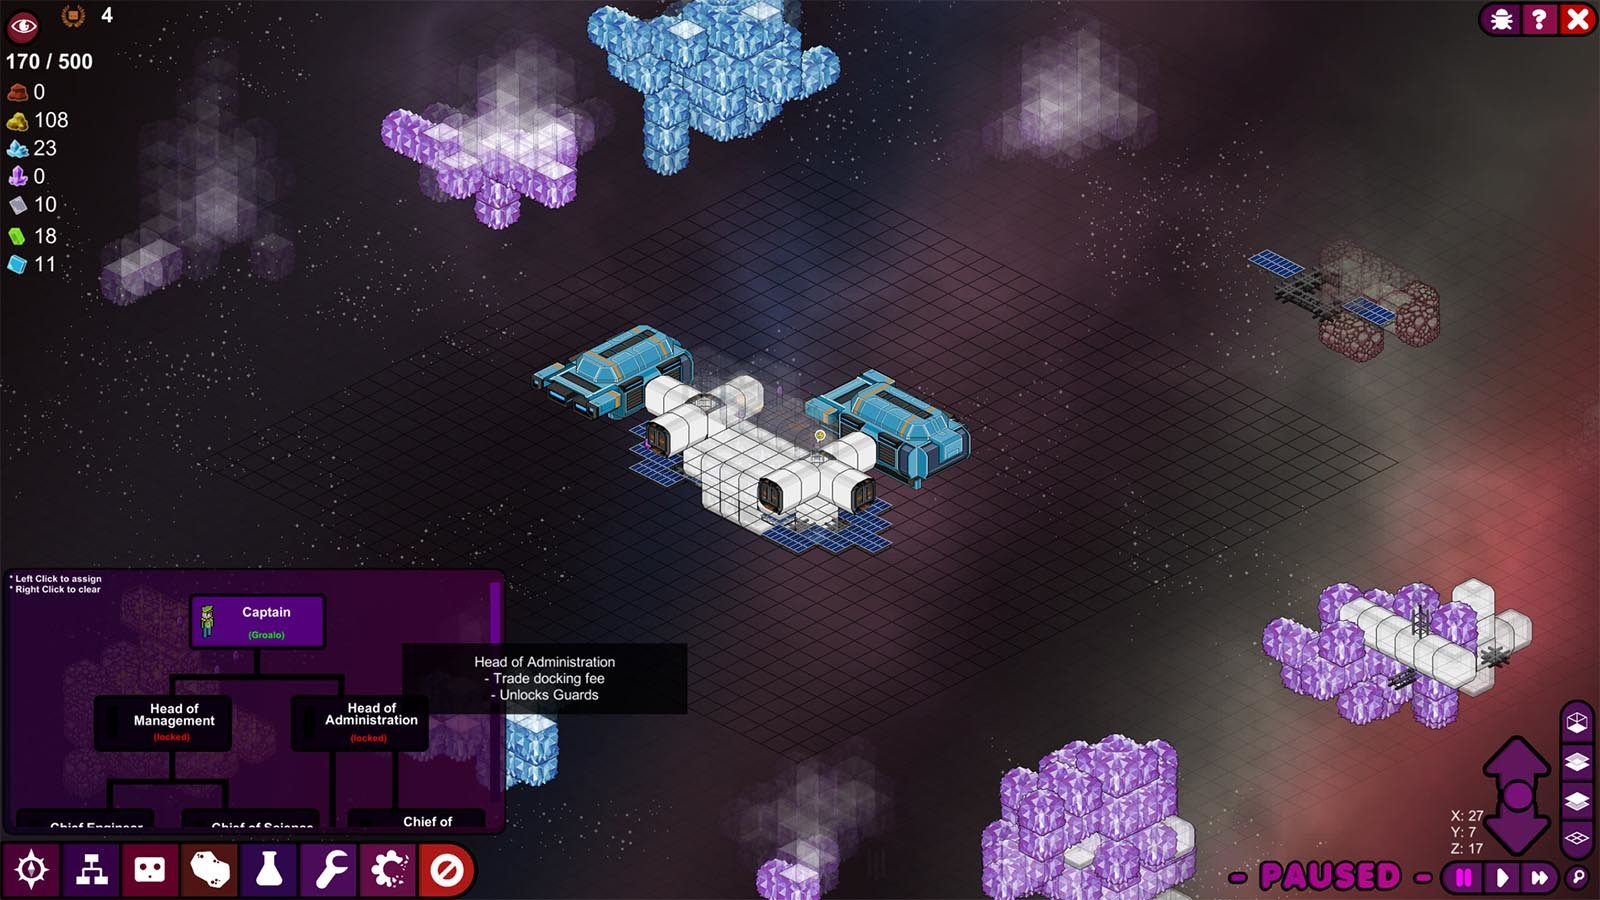 Meeple Station [Steam CD Key] for PC, Mac and Linux - Buy now